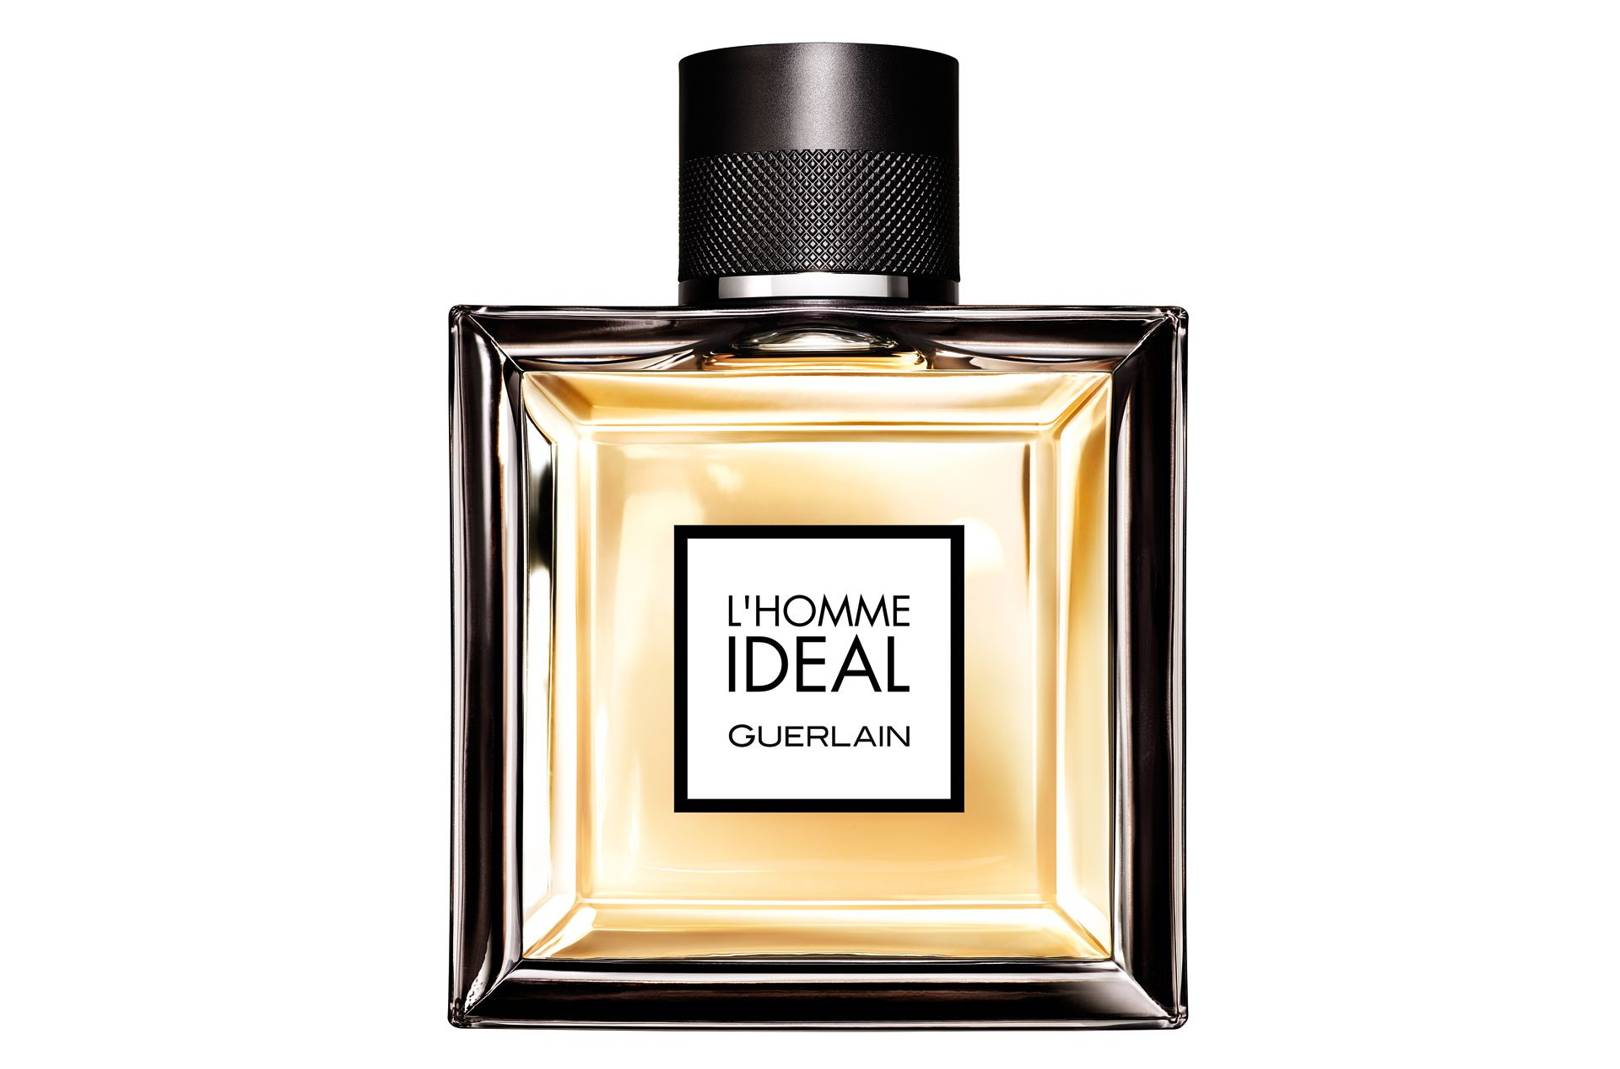 The Gq Fragrance Guide What Is Tonka Bean British Master Spray Cologne Black Musk